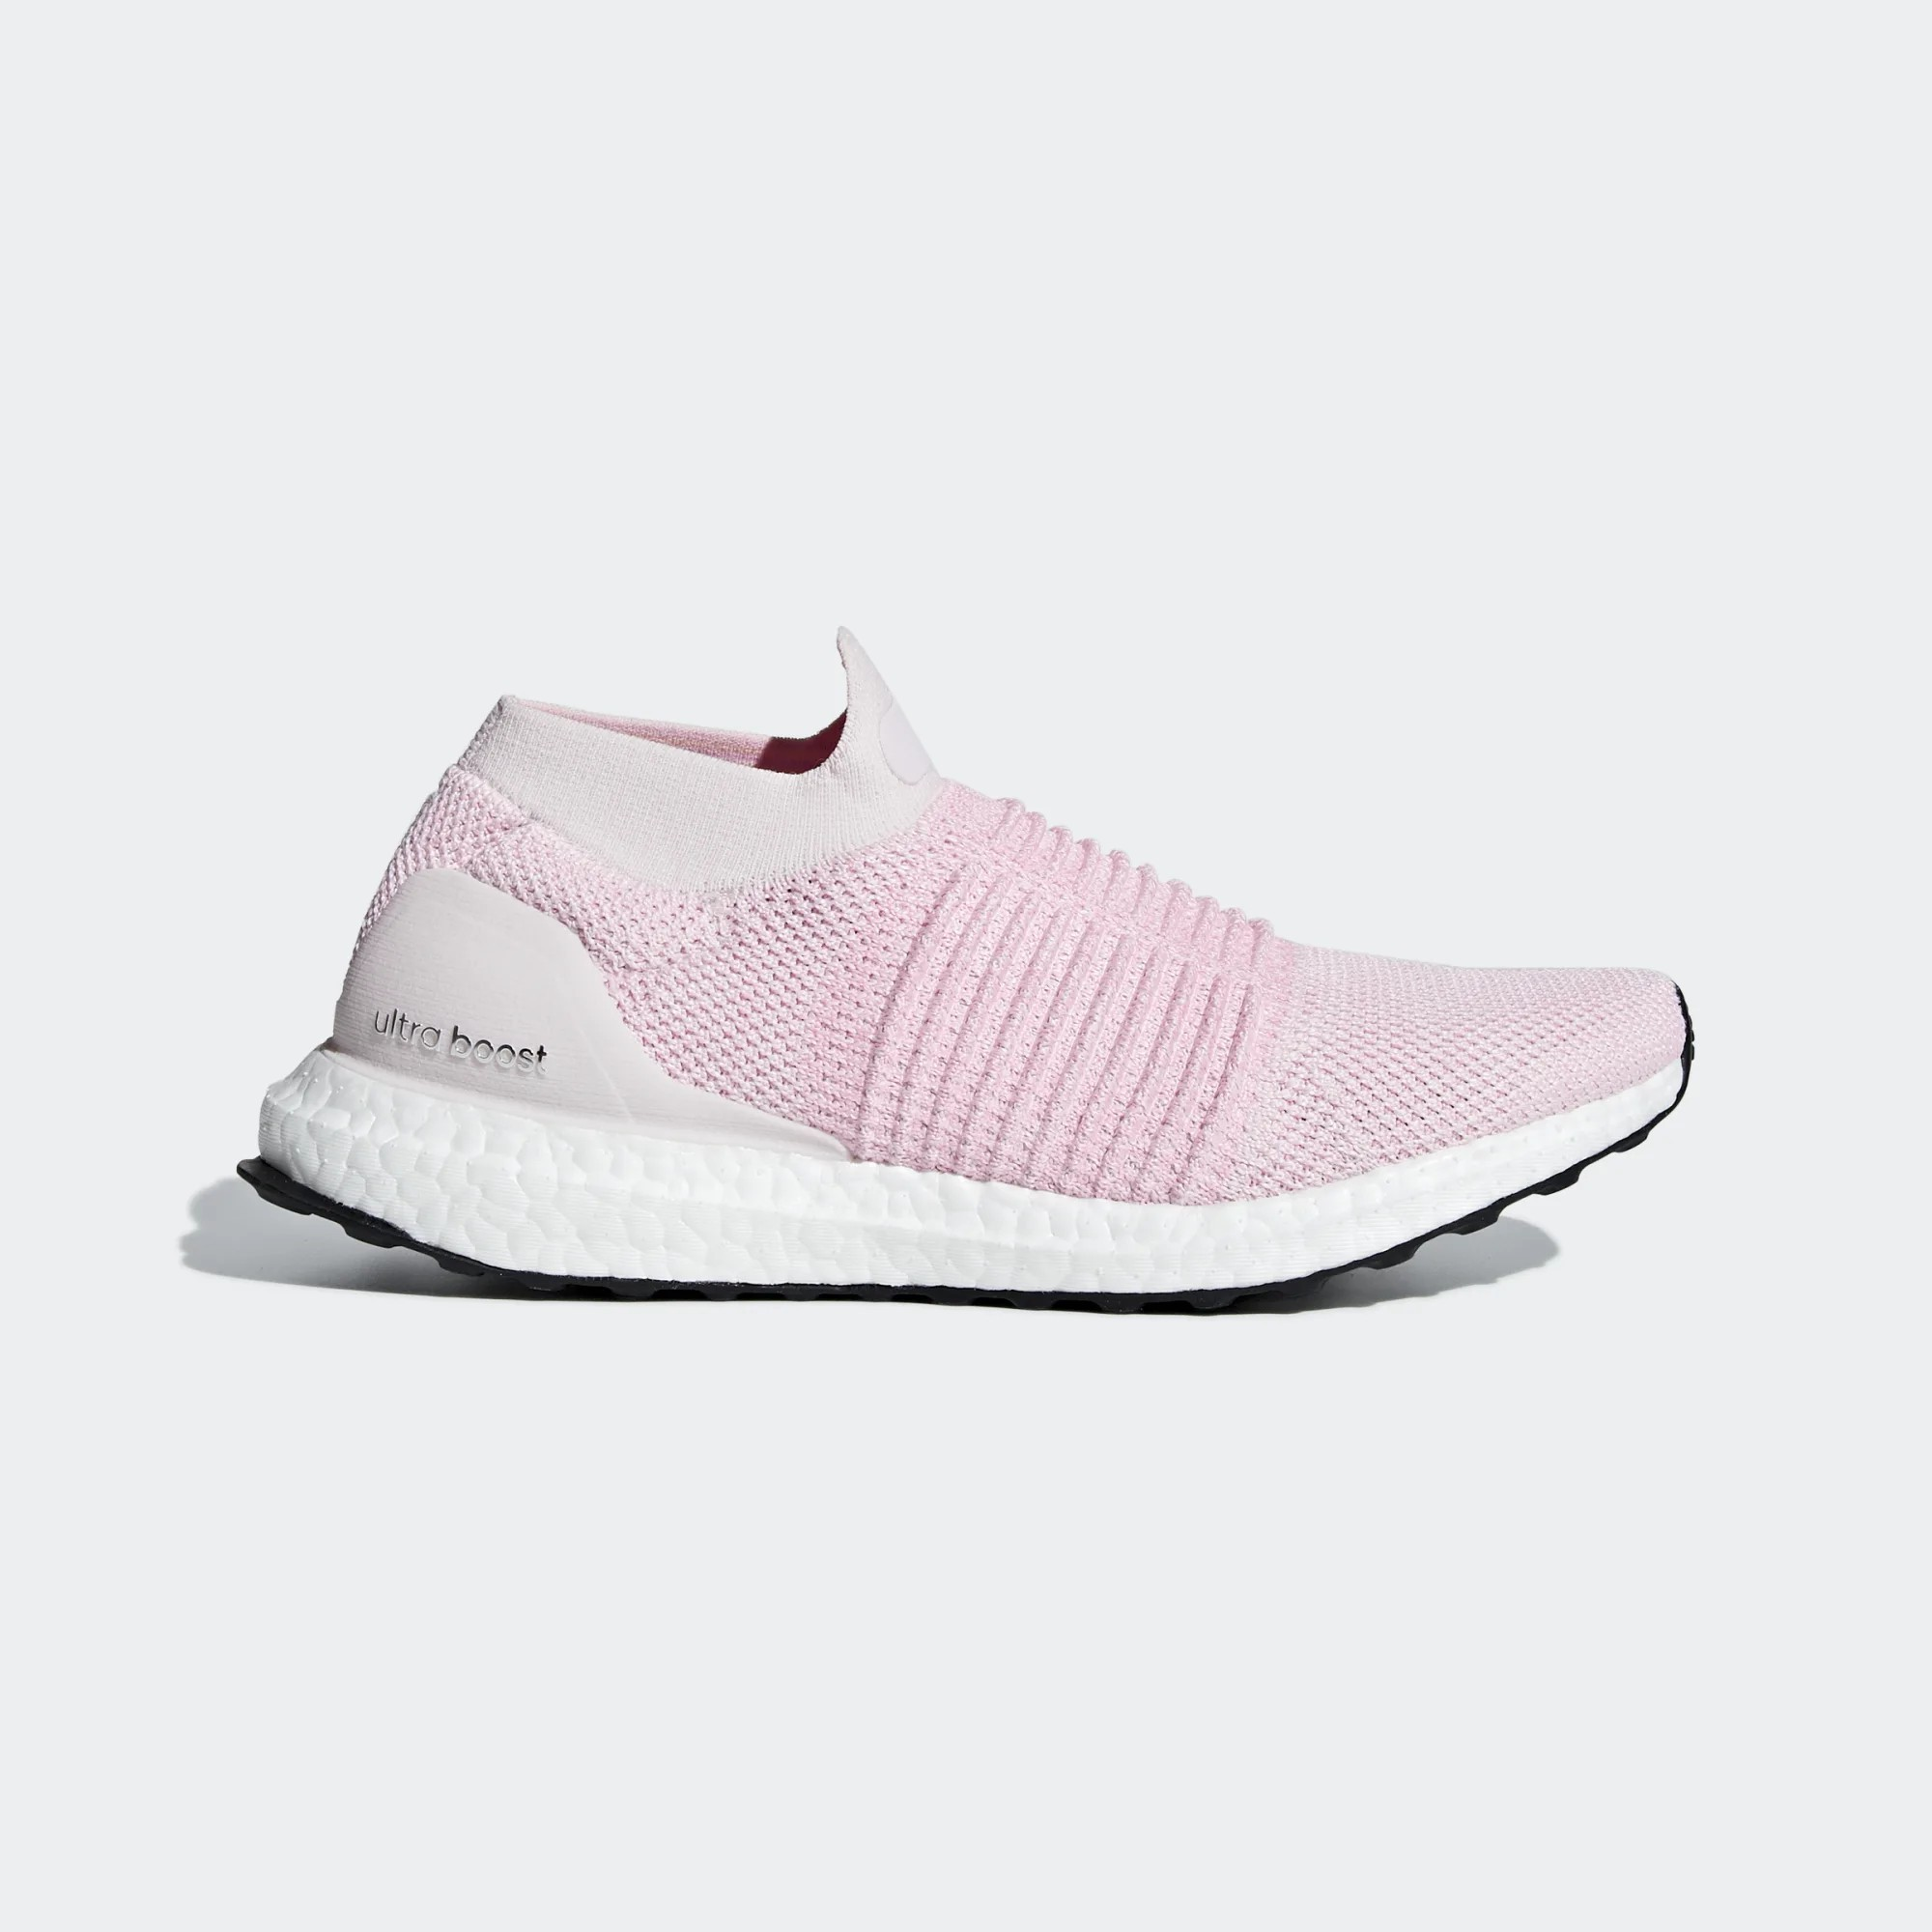 Adidas B75856 Femme Ultra Boost laceless Fonctionnement Chaussures Rose